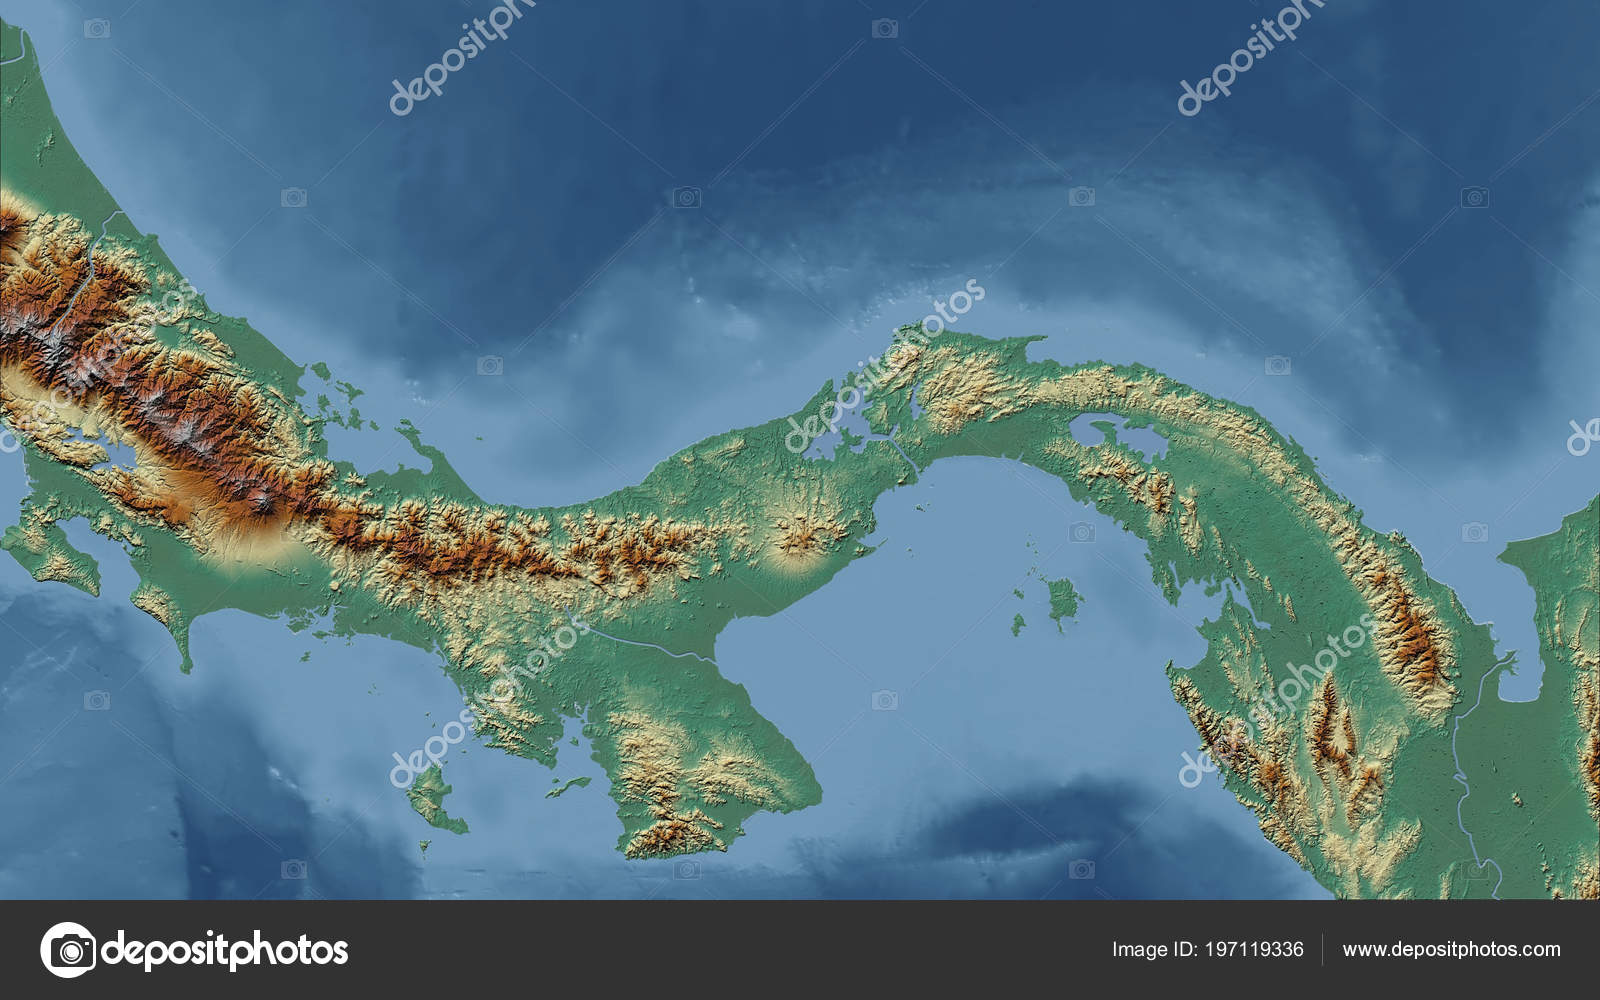 Topographic Map Of Panama.Panama Close Perspective Country Outline Topographic Relief Map